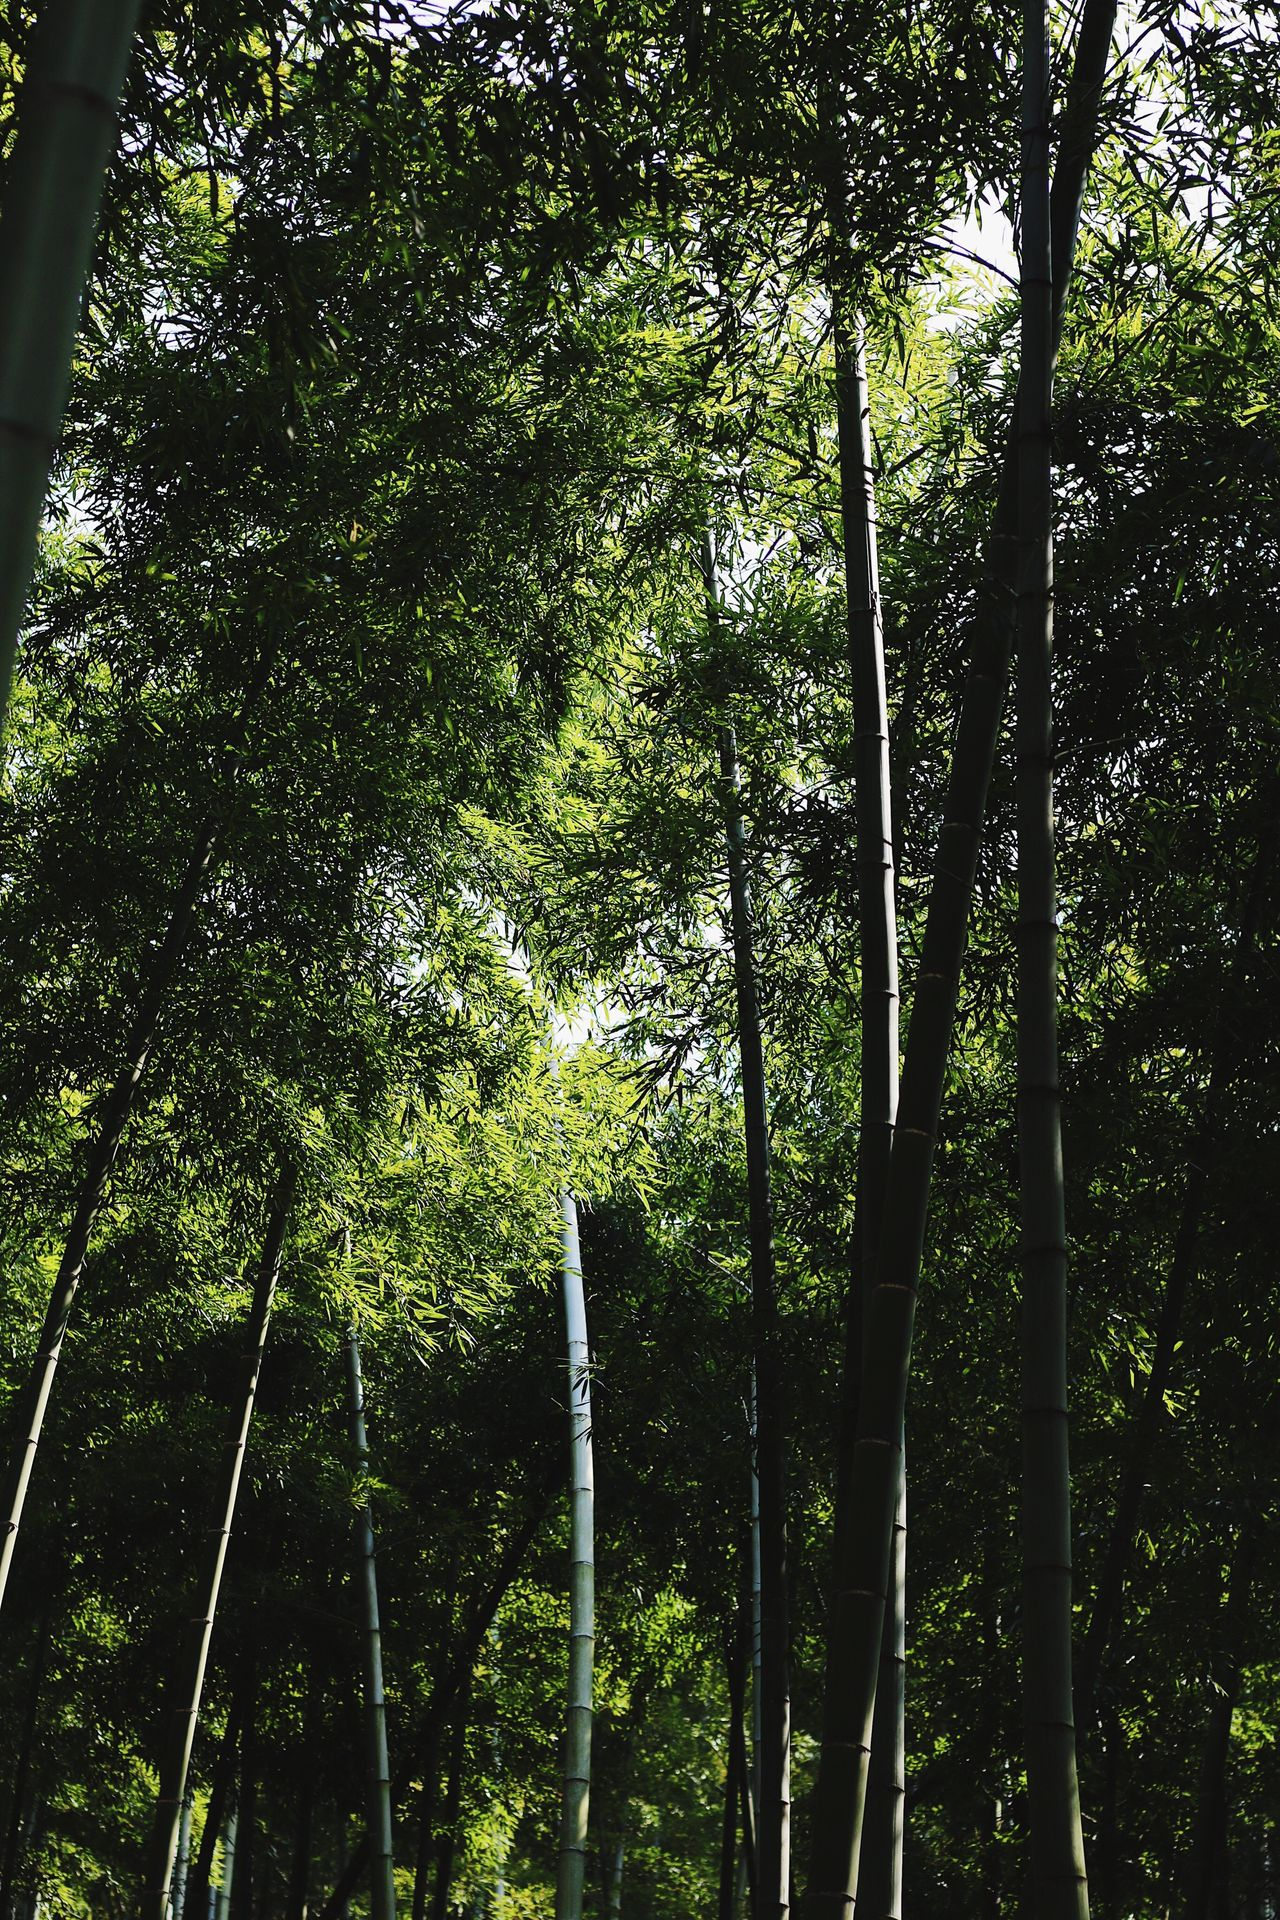 Bamboo Tree Nature Growth Green Color Low Angle View Tranquility Beauty In Nature No People Outdoors Day Scenics Tranquil Scene Forest Sky Bamboo Grove From My Point Of View EyeEmNewHere EyeEm Gallery Wildlife & Nature Spring Springtime Beauty In Nature Peace Peace And Quiet